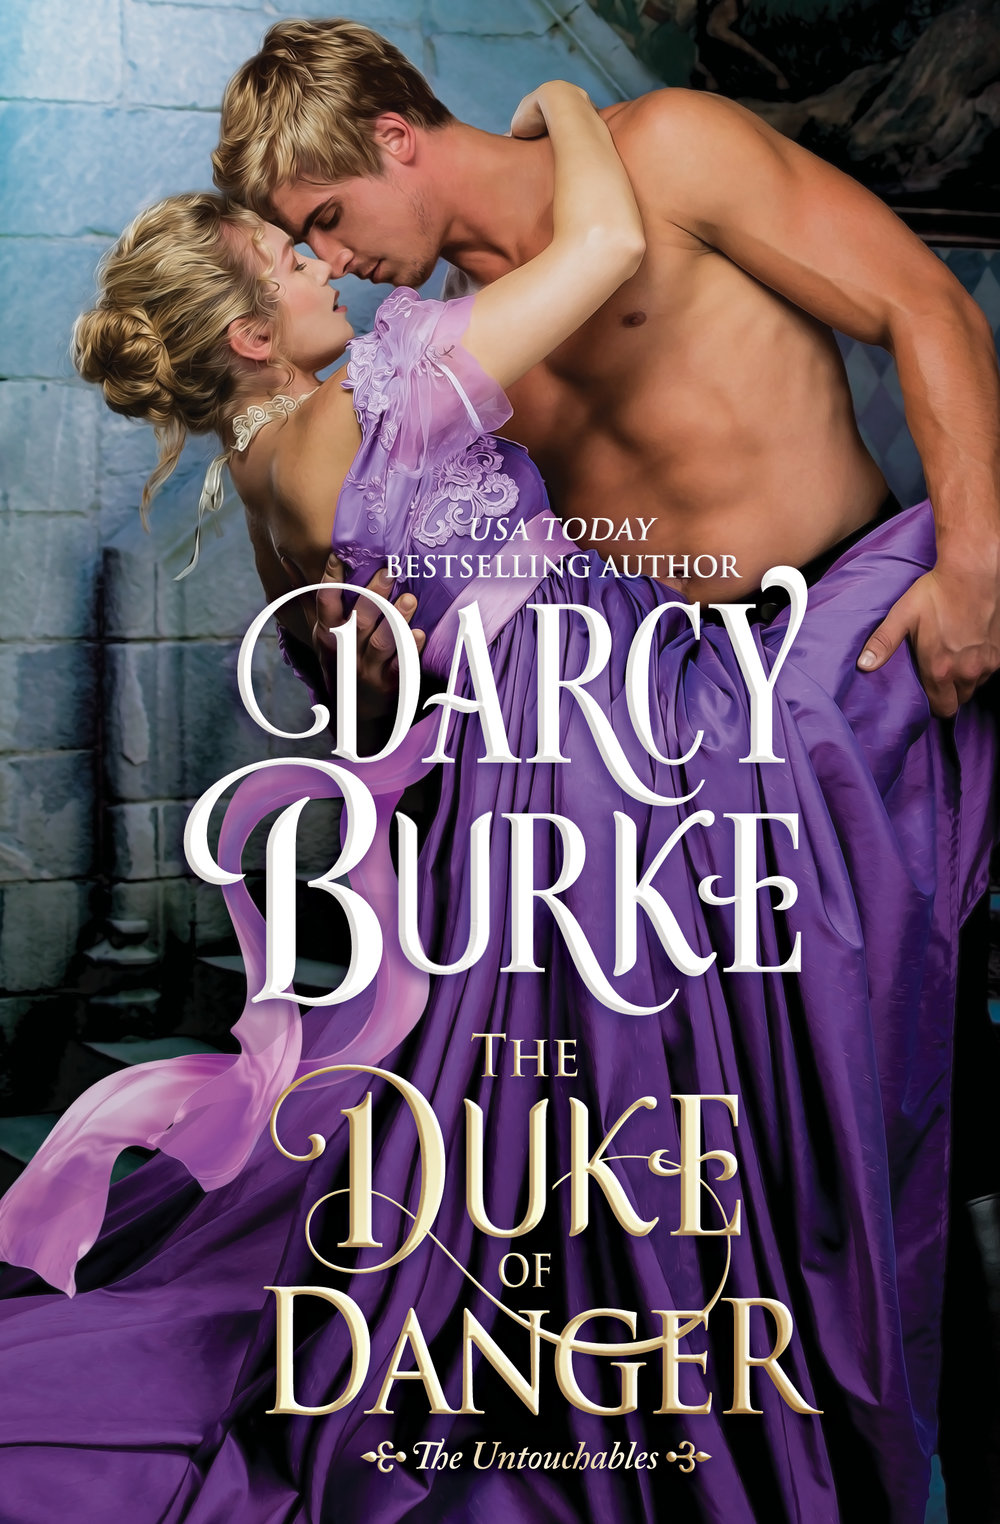 The Duke of Danger - BK 6.jpg